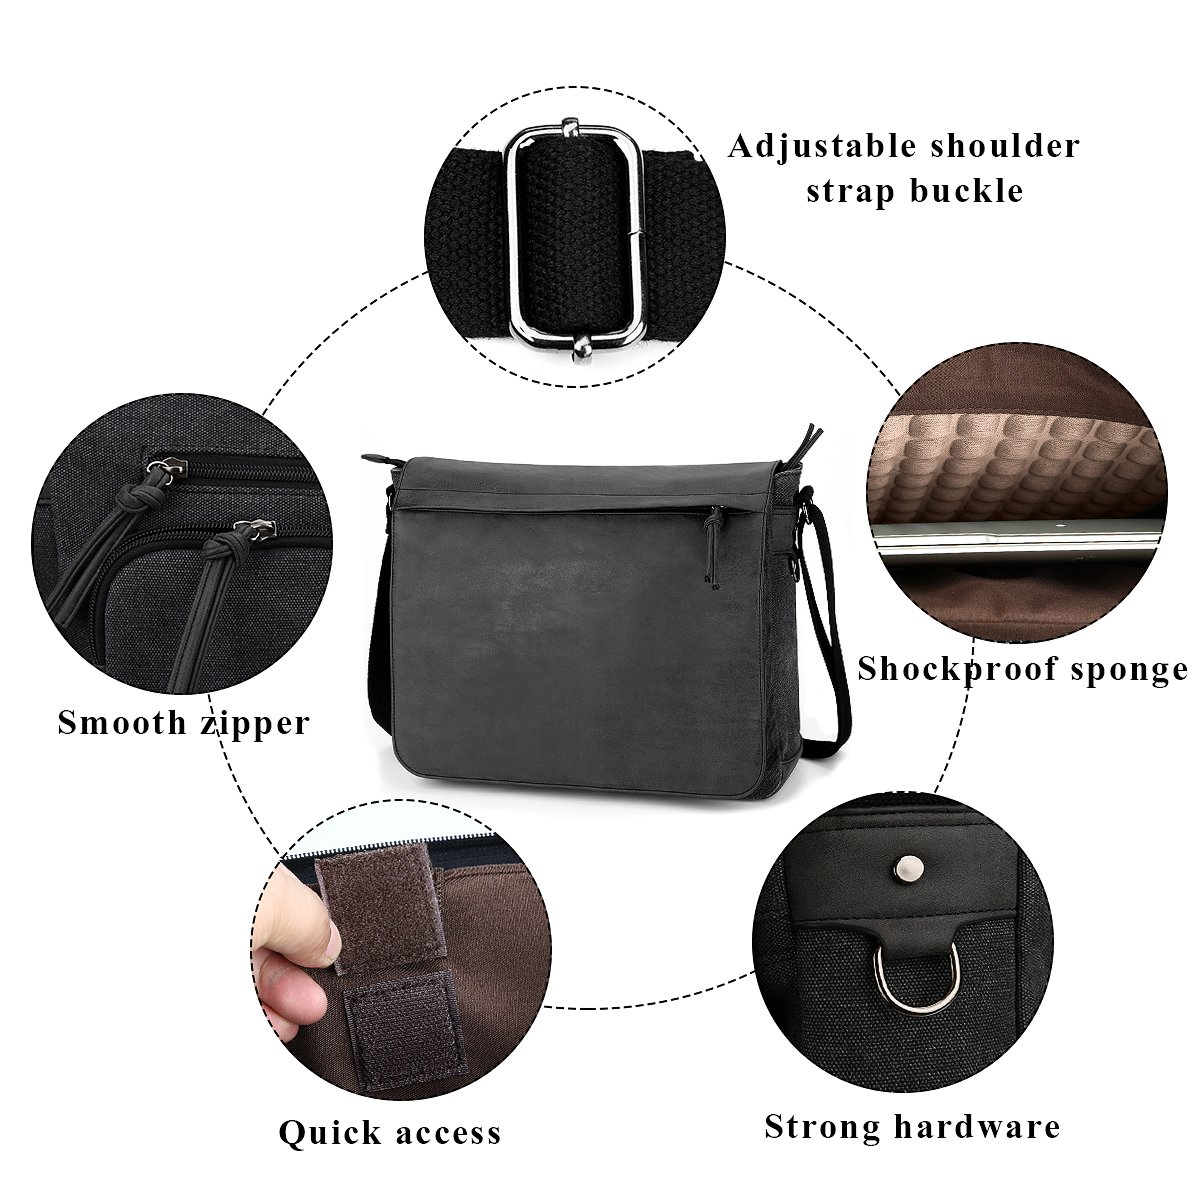 "Mens Laptop Messenger Bags 15.6"" Water Resistant Shoulder Bag Tocode PU Leather Canvas Satchel Crossbody Bags Brifecase Office Bag Large Computer Bag for Work College School Travel, Black by Tocode (Image #7)"